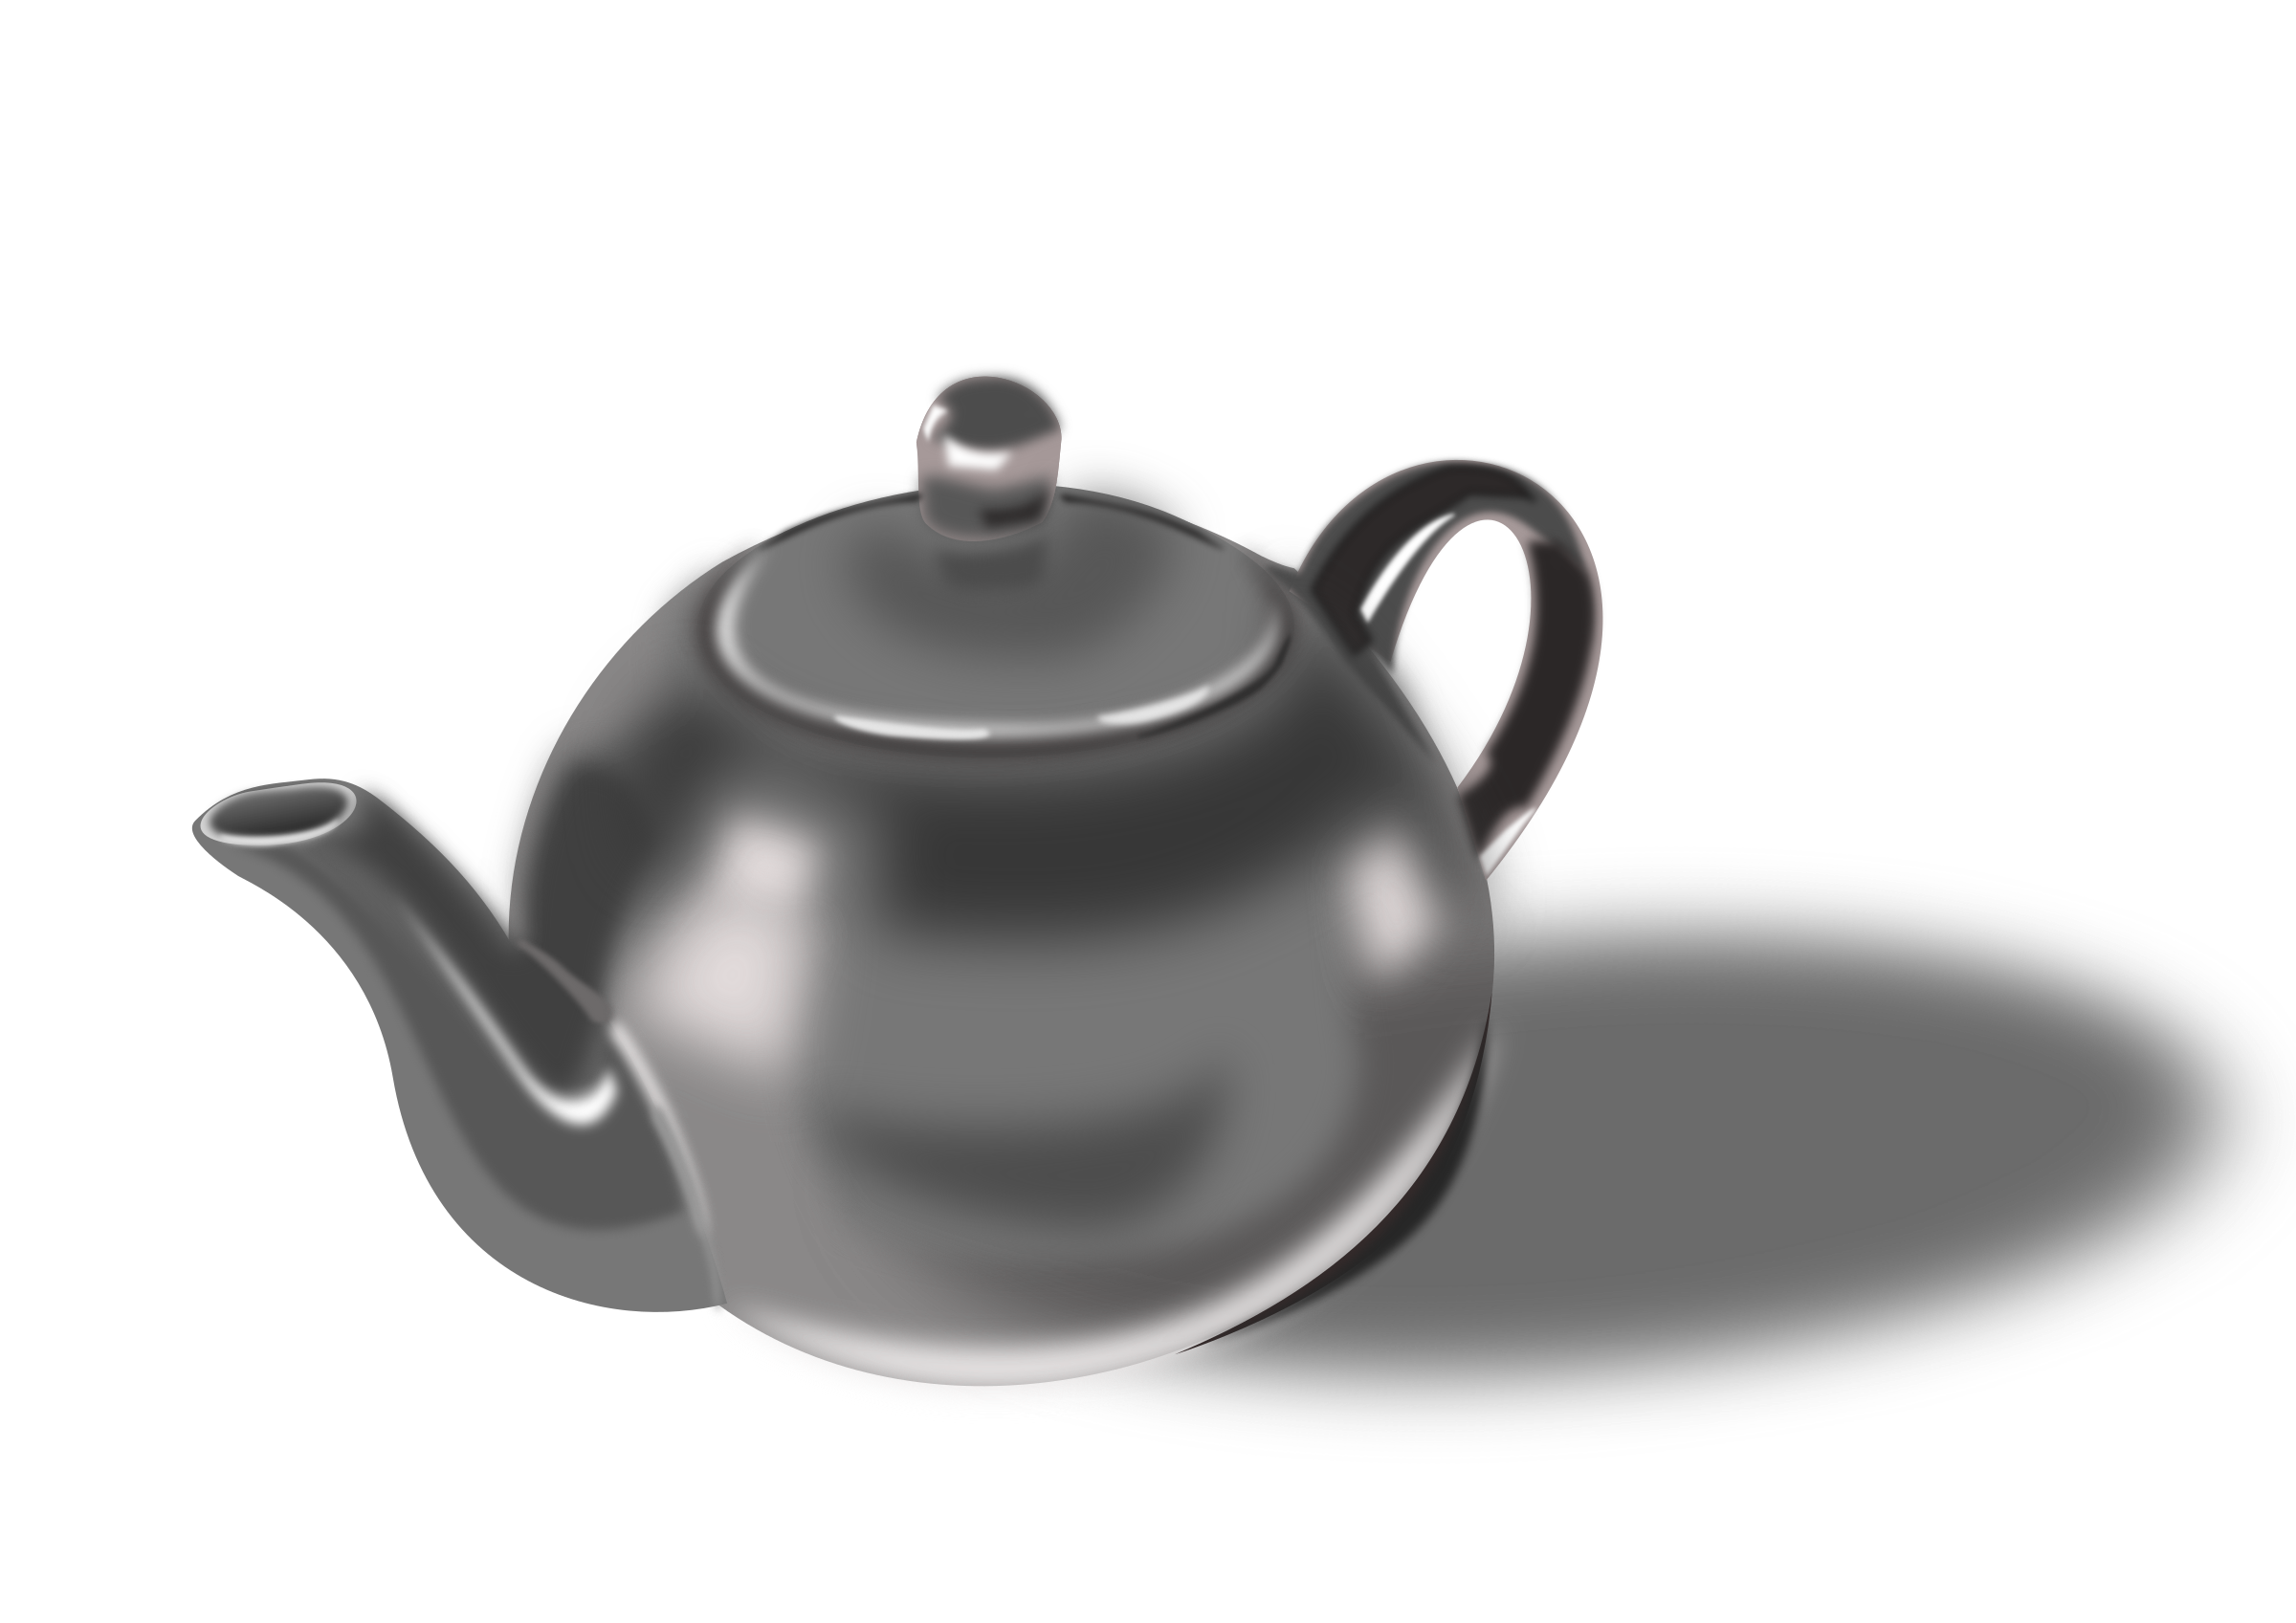 Tea pot by dominiquechappard